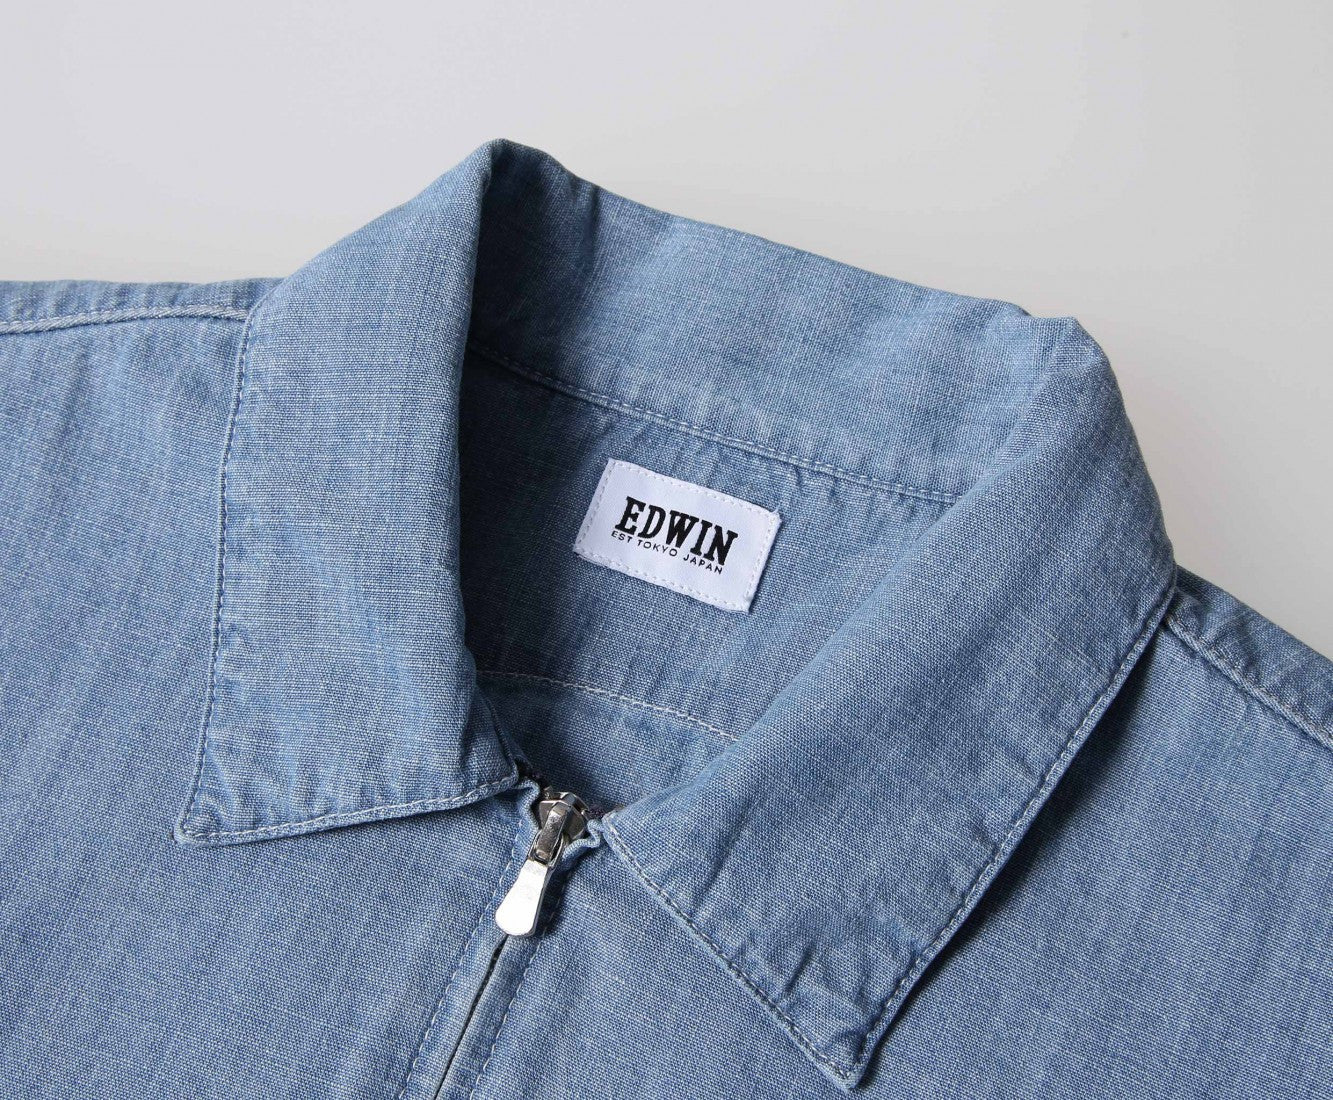 Edwin Europe Demo Zip Shirt - Stone Bleached-Denim-Navy Selected Shop